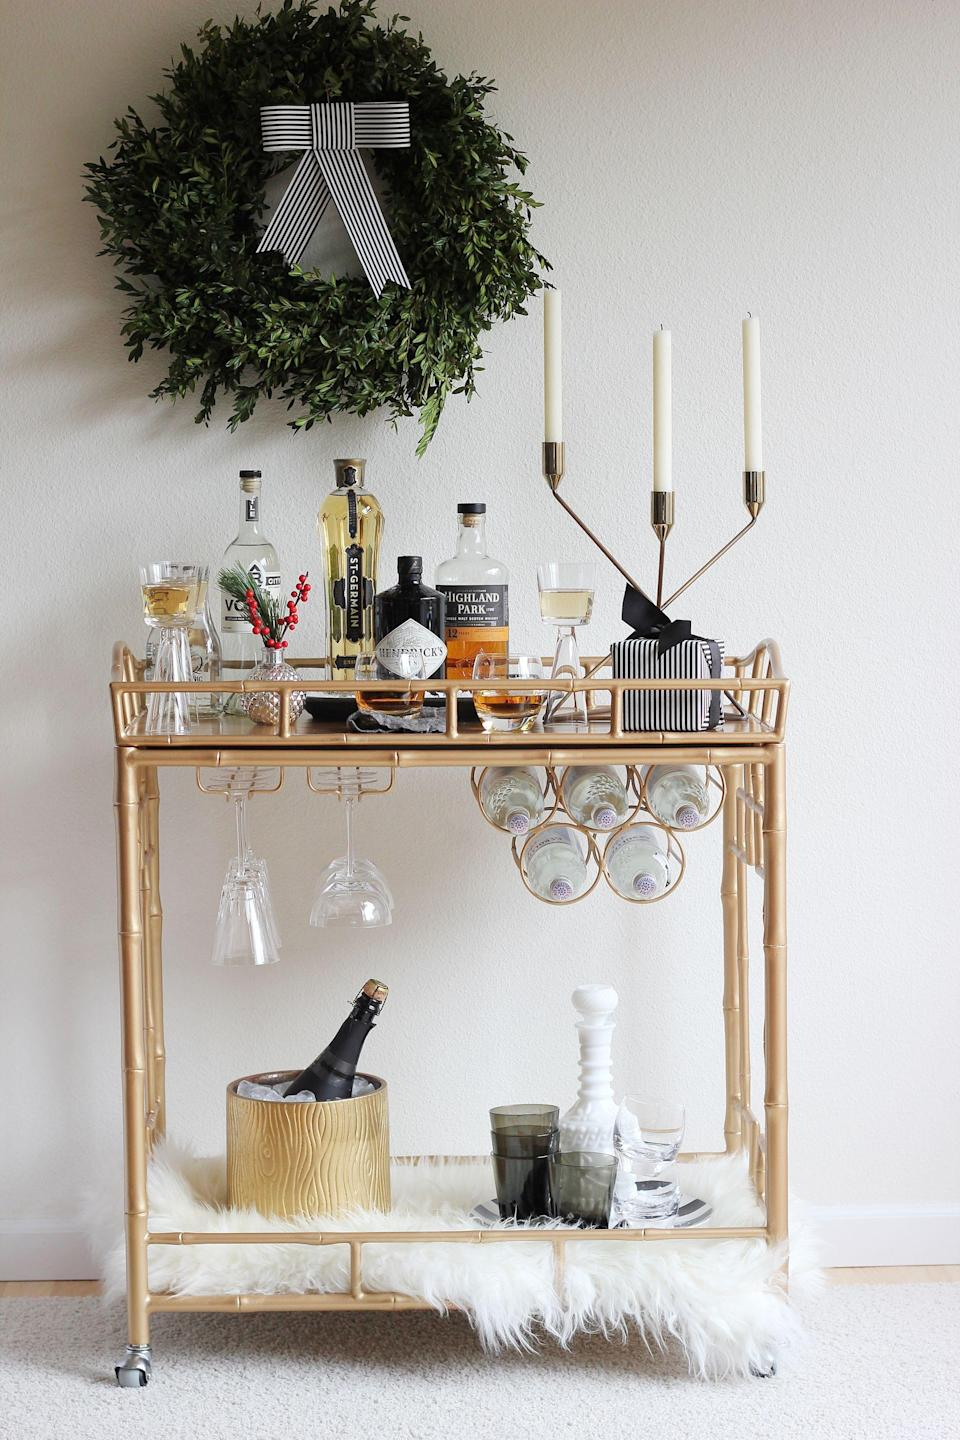 """<p>For a pared-down New Year's look, set up an old-fashioned brass bar cart worthy of Ernest Hemingway, ala <a rel=""""nofollow noopener"""" href=""""https://jennybatt.com/blog/an-easy-diy-paper-bow-for-your-holiday-bar-cart"""" target=""""_blank"""" data-ylk=""""slk:Hank & Hunt"""" class=""""link rapid-noclick-resp"""">Hank & Hunt</a>, and go light on the holiday touches. A few tapers and sprigs of greenery are all it needs. </p>"""